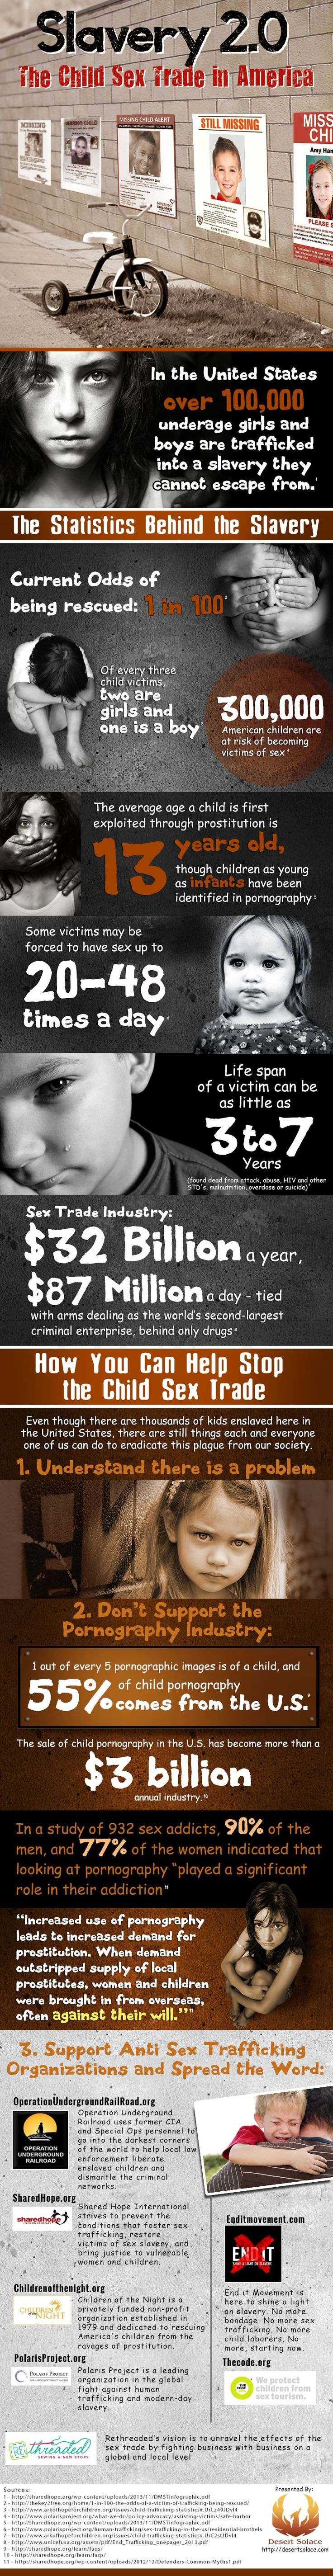 Slavery 2.0: The Child Sex Trade in America – Earthly Mission